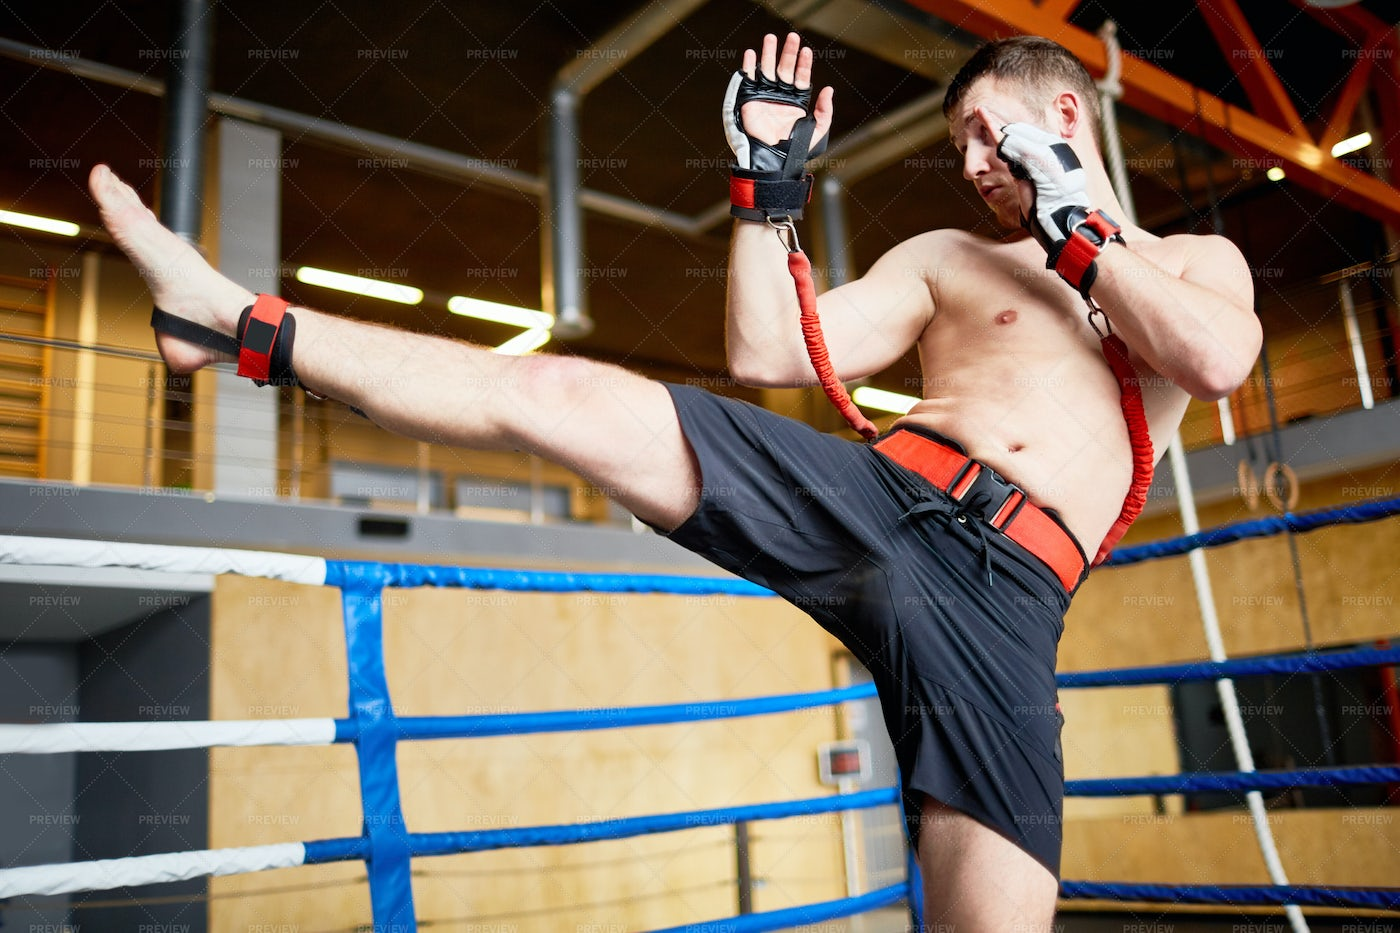 Kickboxer Training With Resistance Belts: Stock Photos